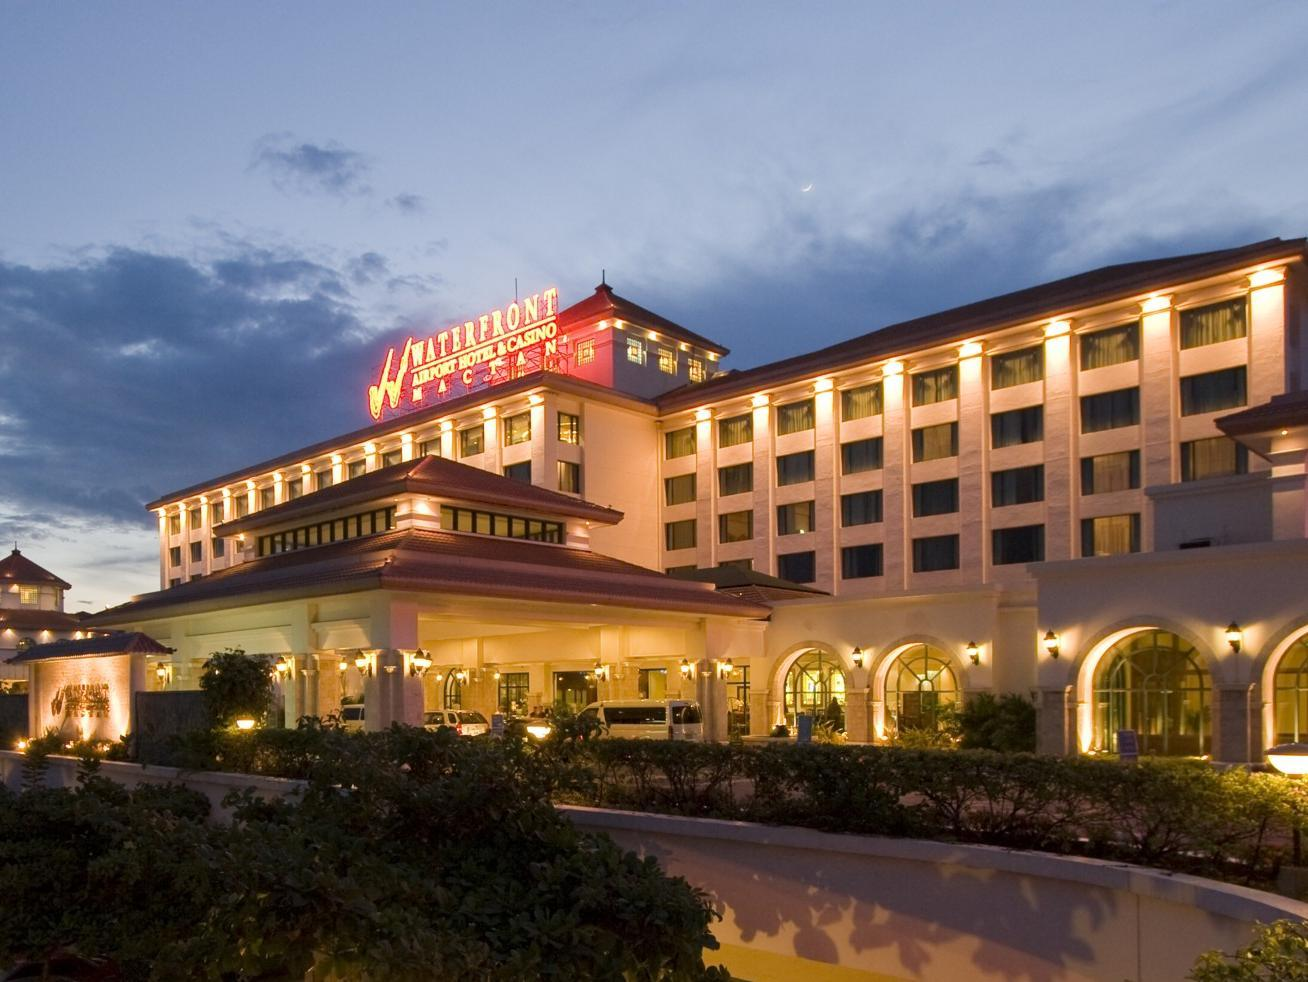 Waterfront Airport Hotel and Casino Cebu - Hotellin ulkopuoli